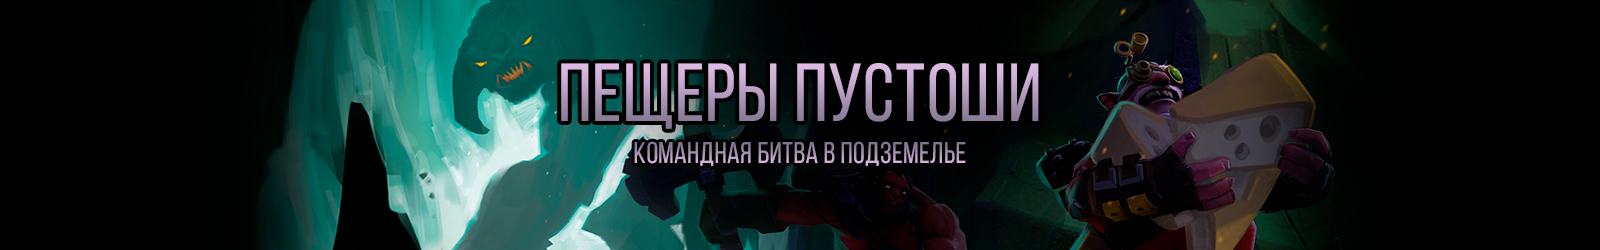 Main Page Giant Banner The Underhollow ru.jpg